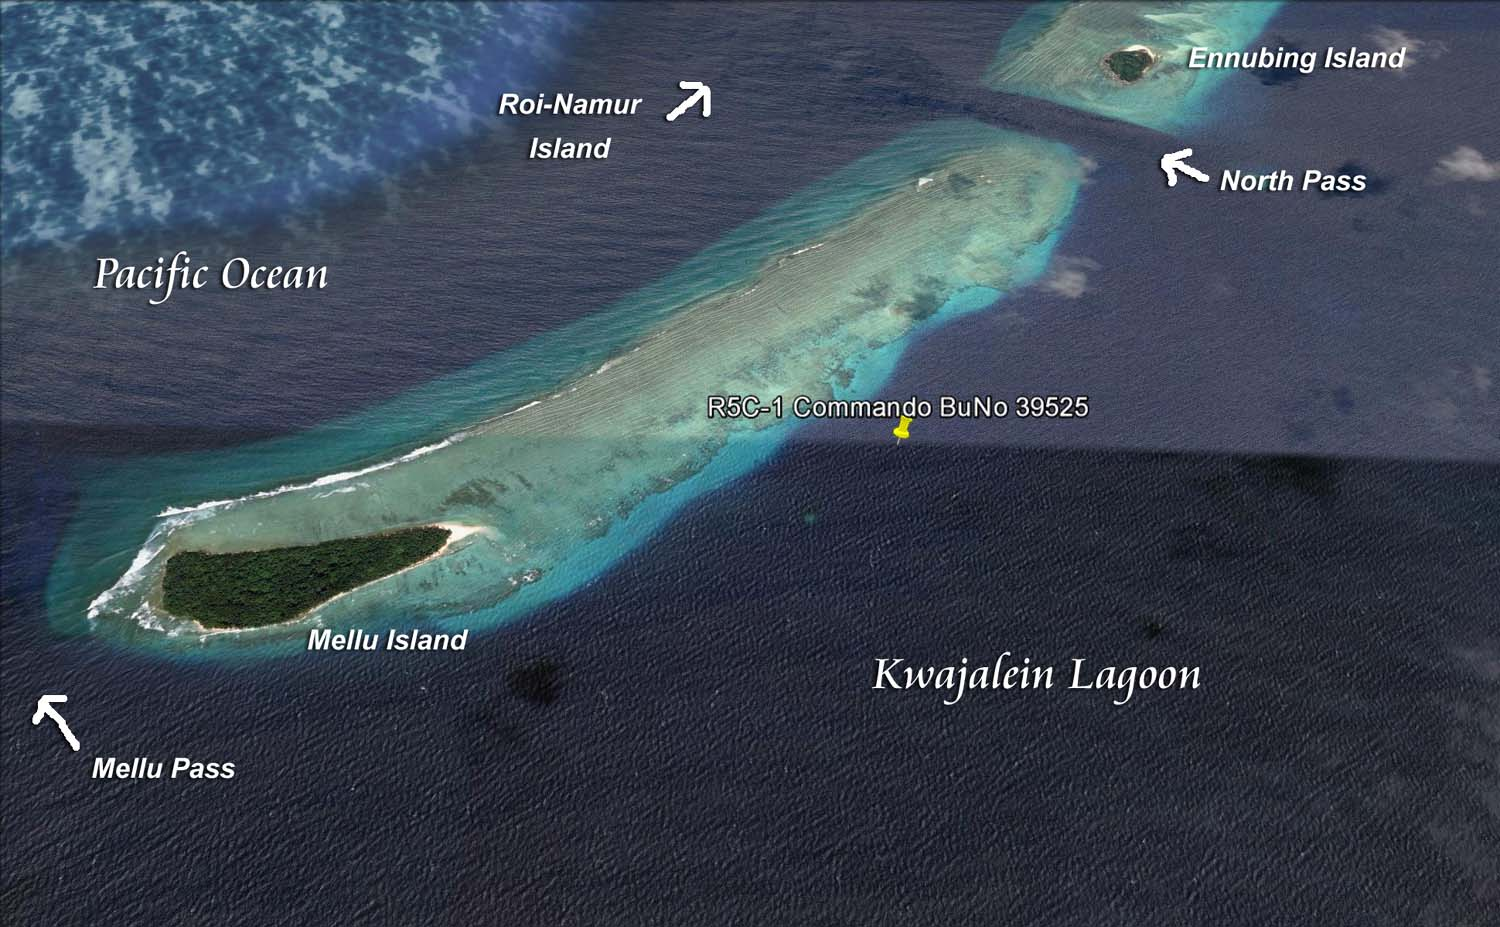 The wreck's location, just off